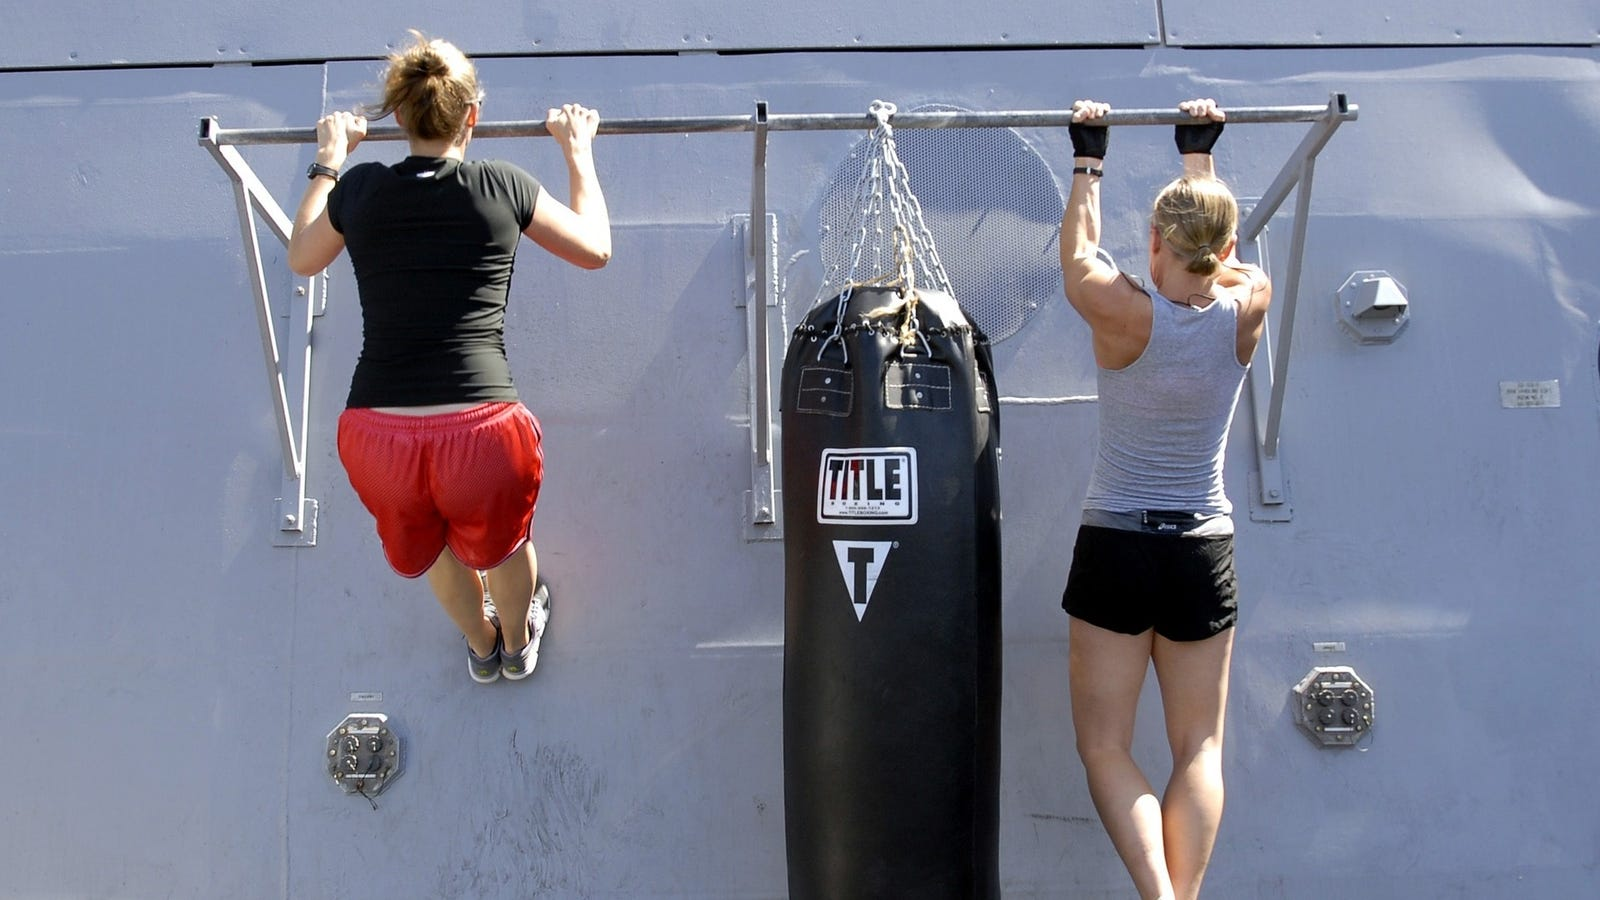 January's Fitness Challenge: Grab Onto That Pull-Up Bar